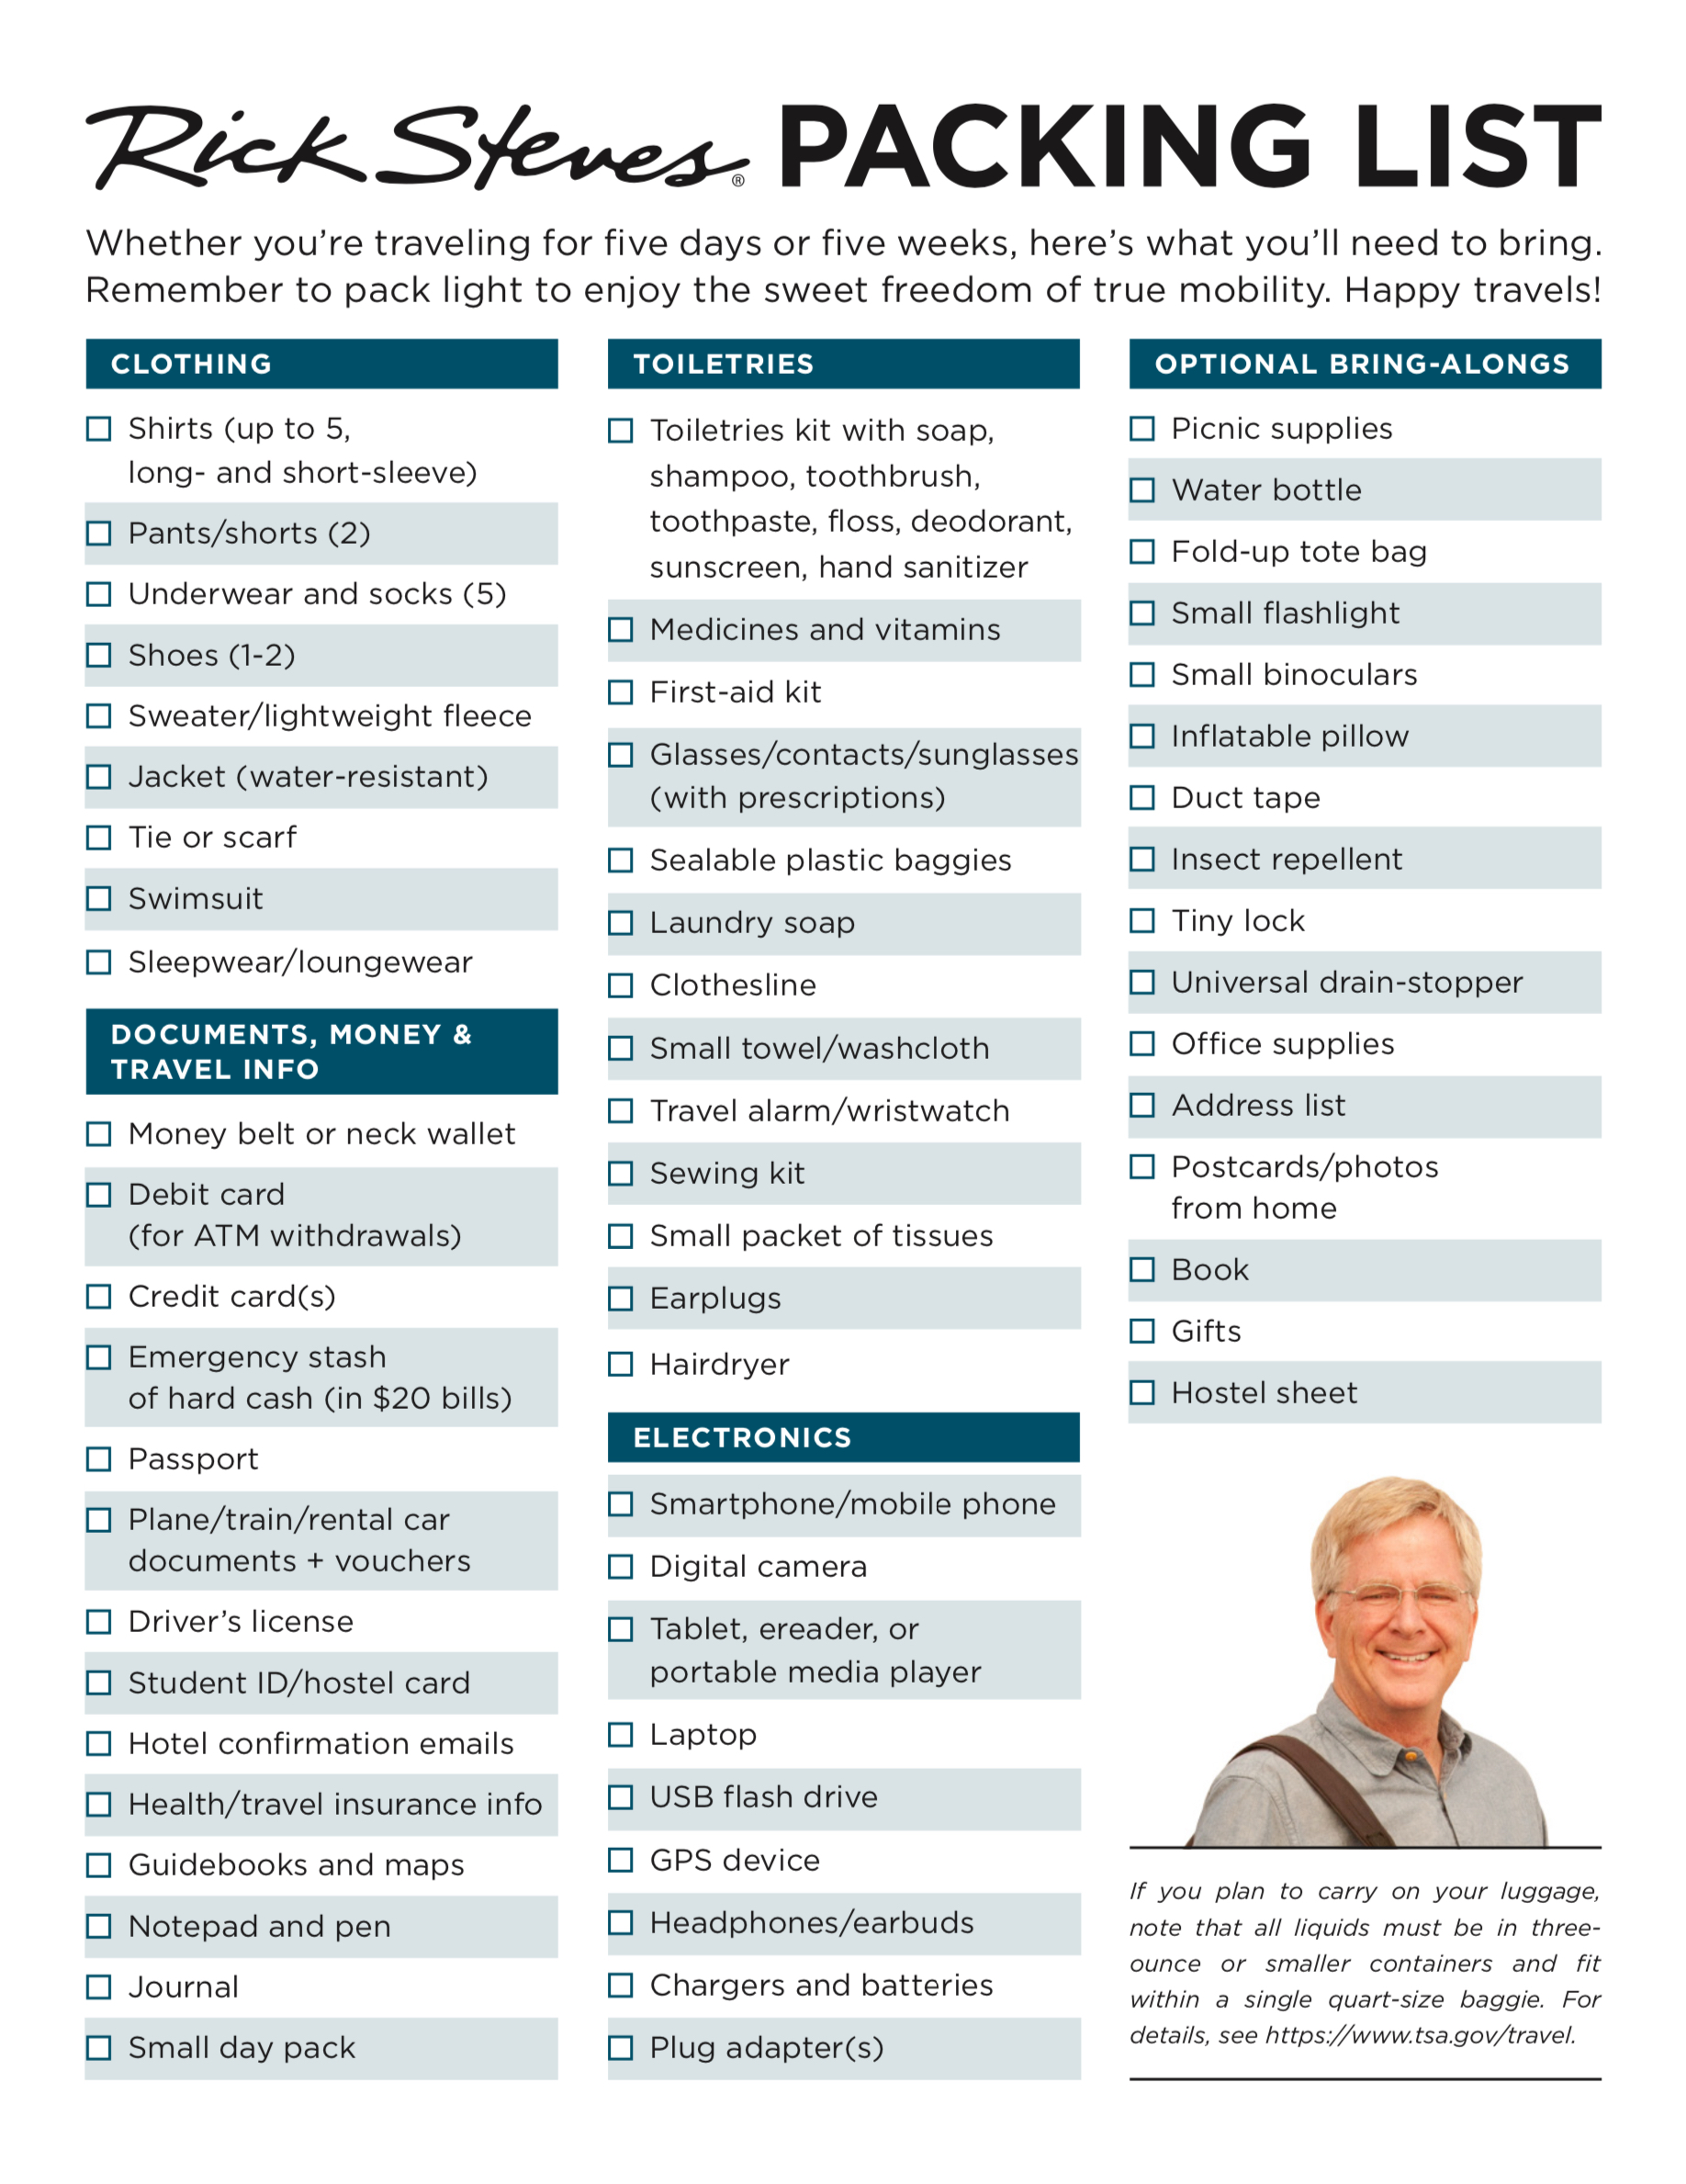 Rick Steves Packing List - Packing Light